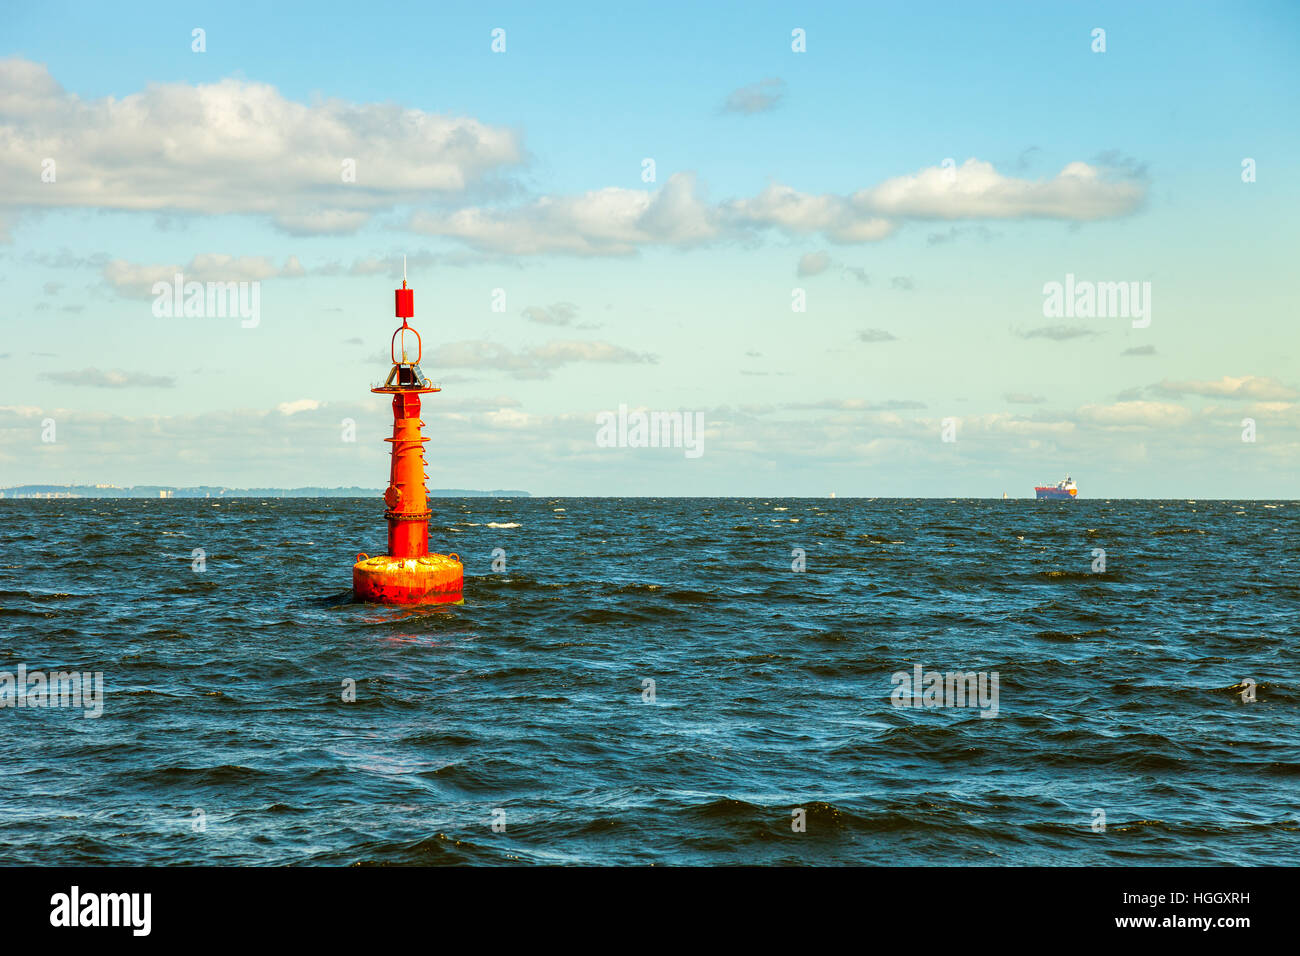 Navigation buoy at the edge of a fairway. Stock Photo